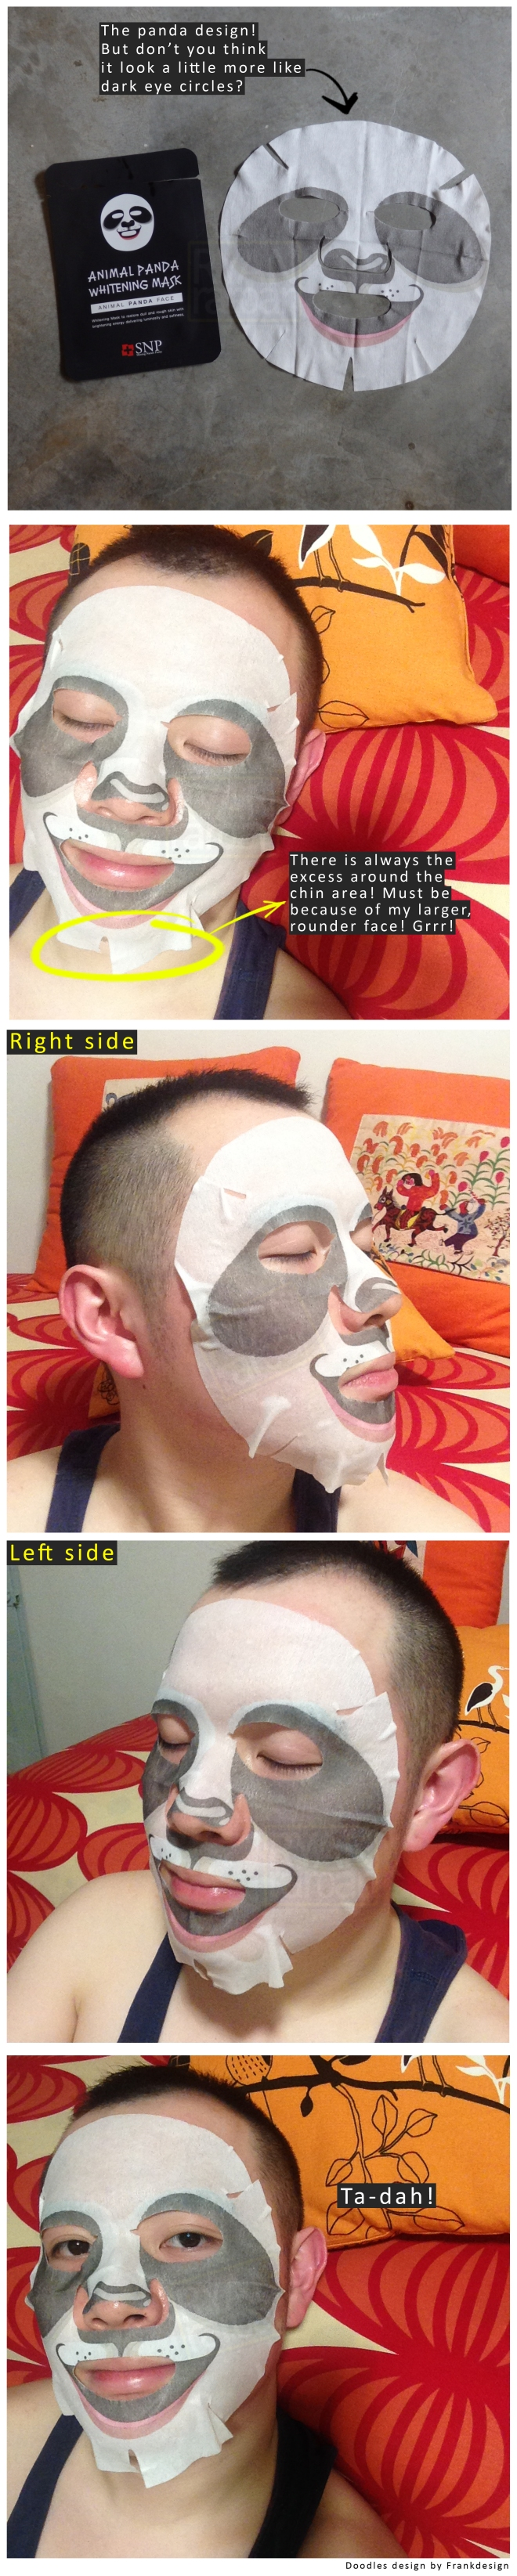 (I put the SNP Animal Panda Whitening Mask to test. Where's the bamboo yo?)